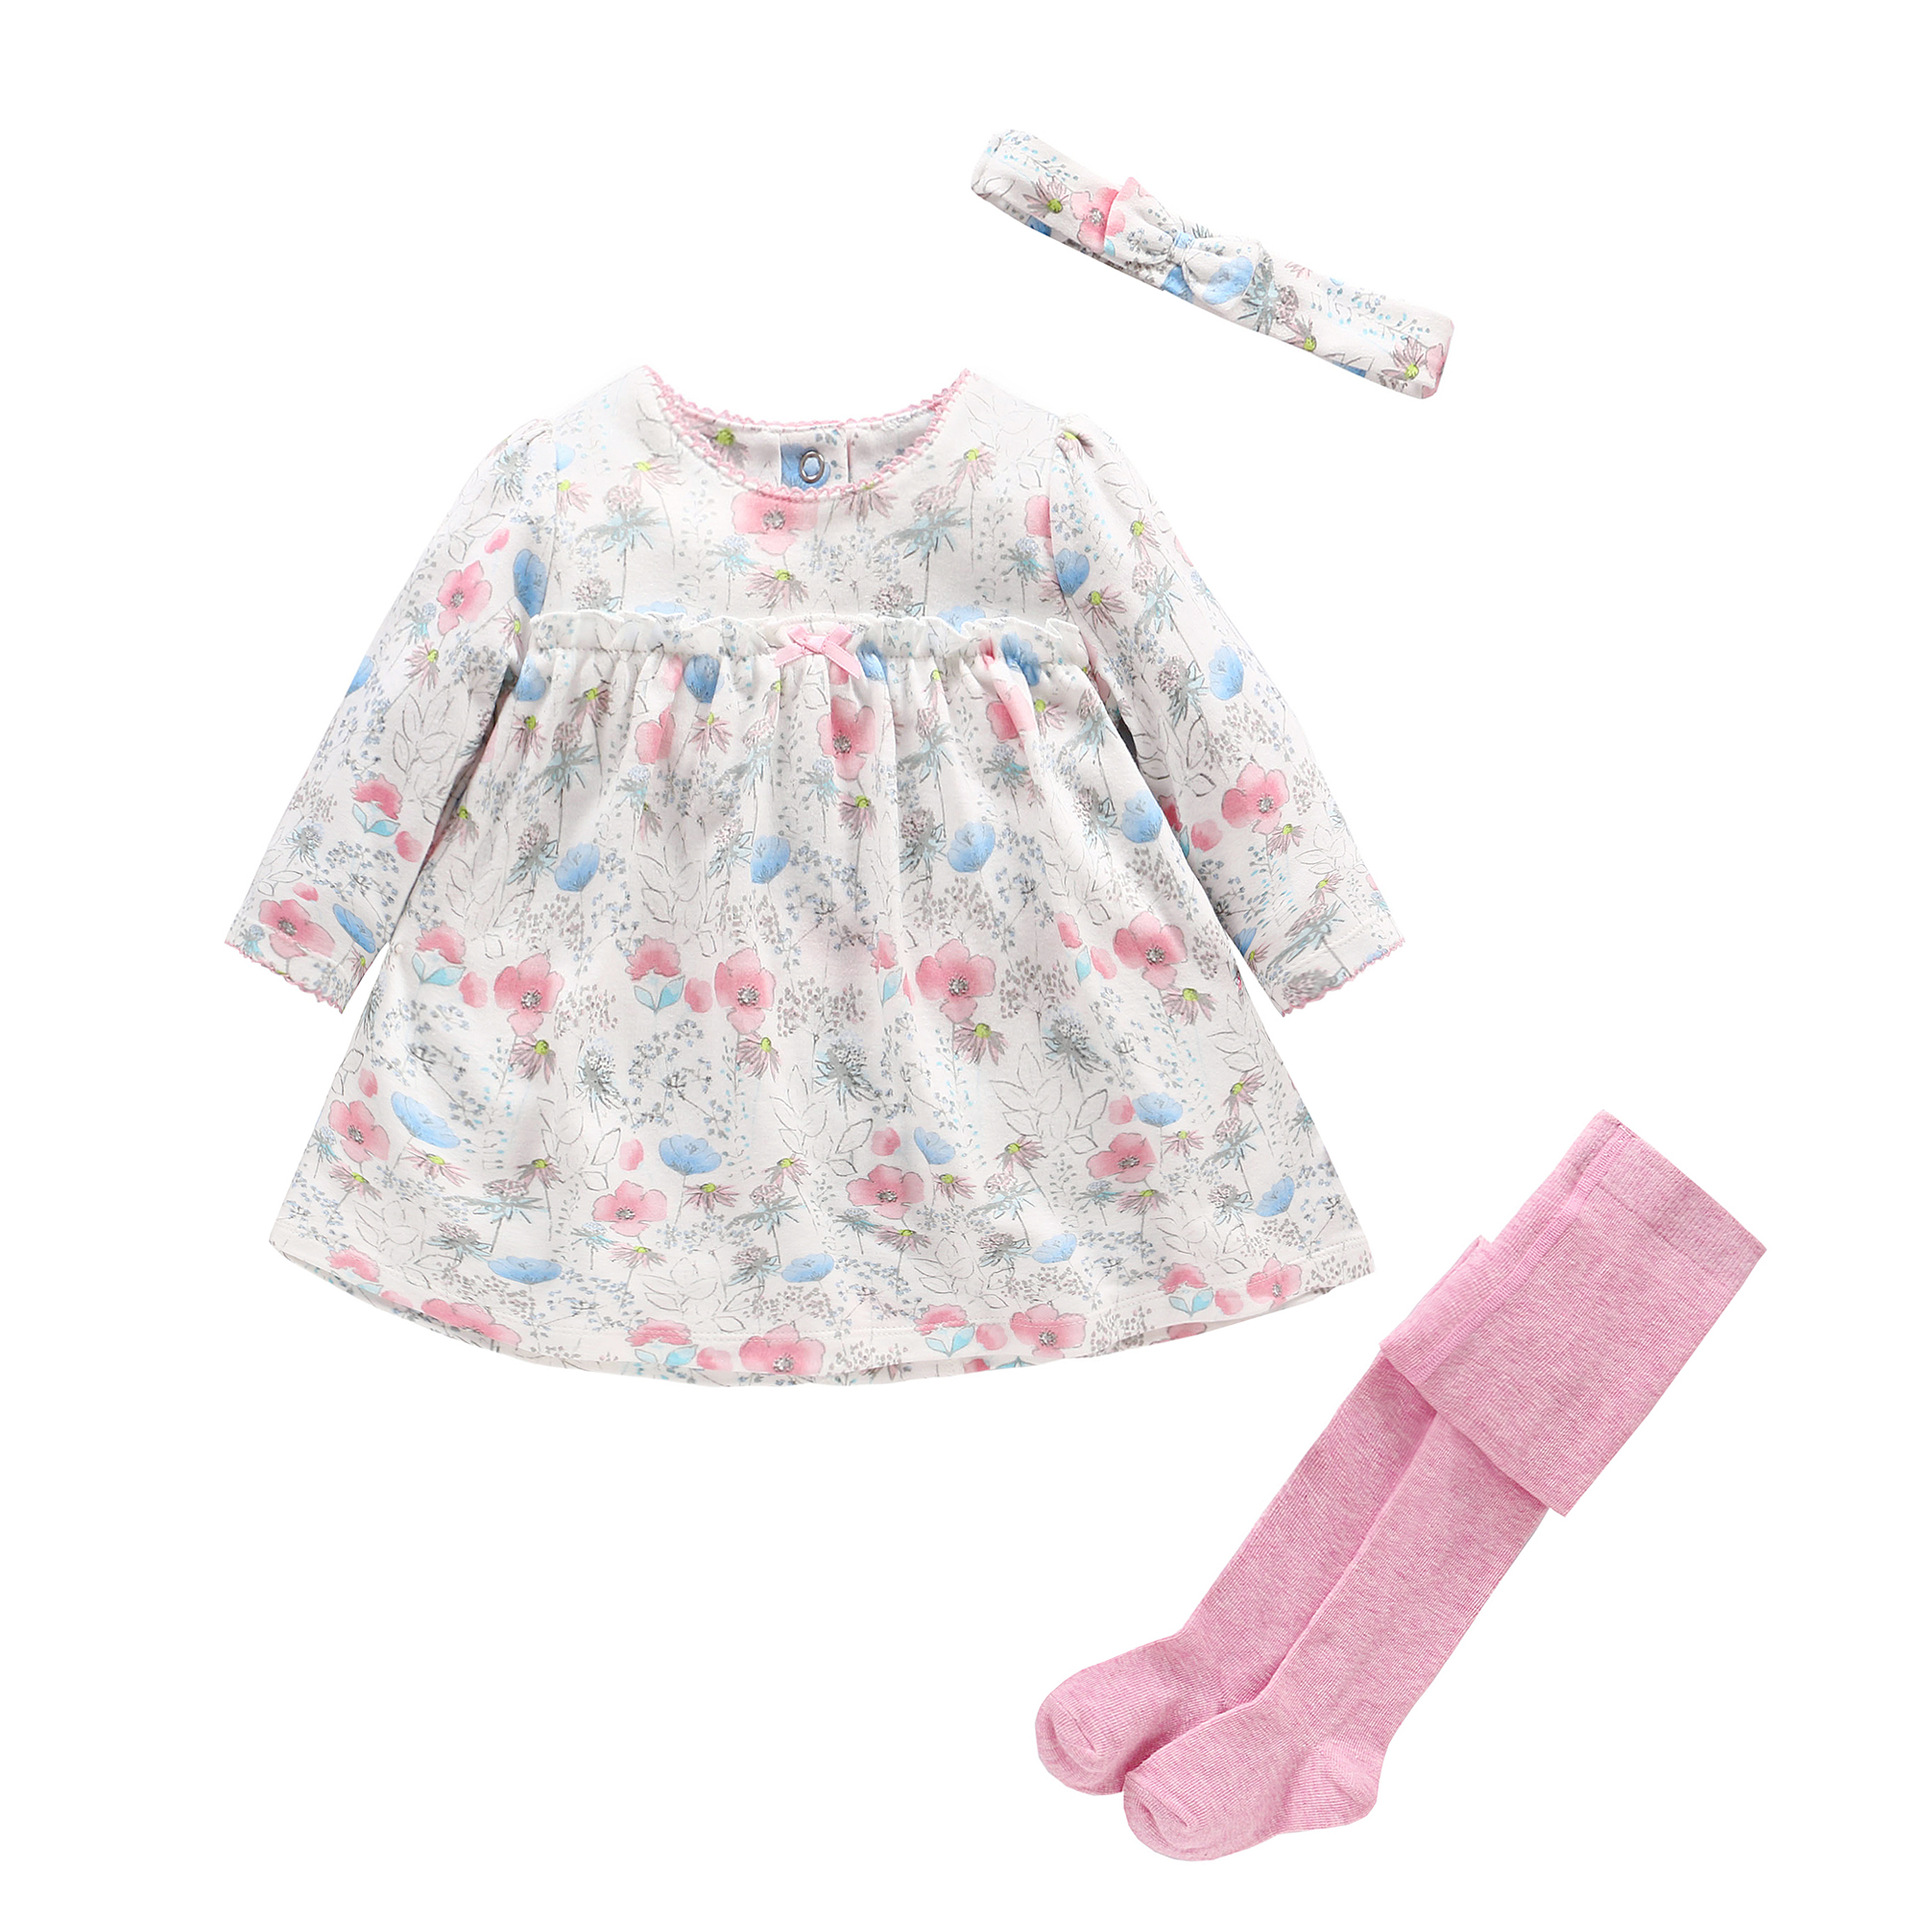 Laundry Bag For Baby Clothes Baby Girl Clothes Set Newborn Girl Baby Dress 43 Headband